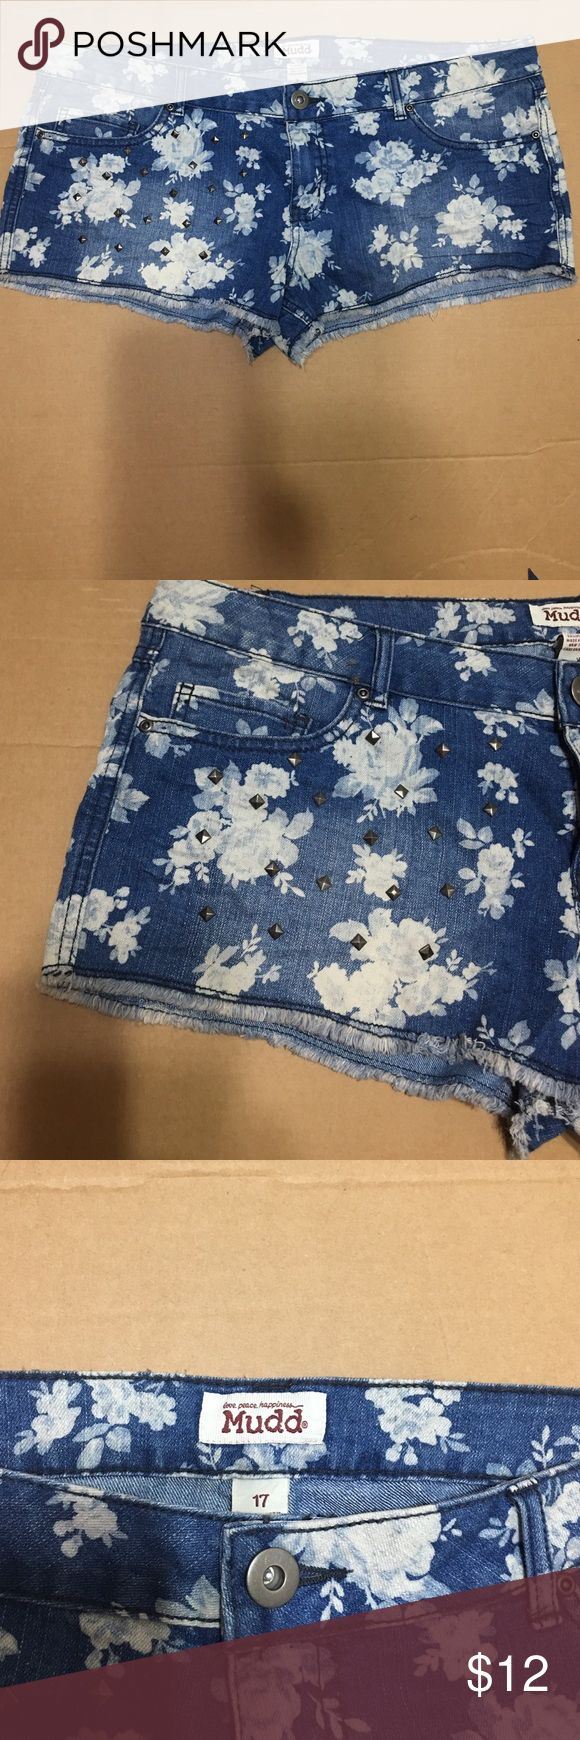 Women Mudd Low Rise Shorts Size 17 Women Mudd low rise shorts size 17. Five pockets, rhinestones on the right front pocket, Blue and cream denim Mudd Shorts Jean Shorts